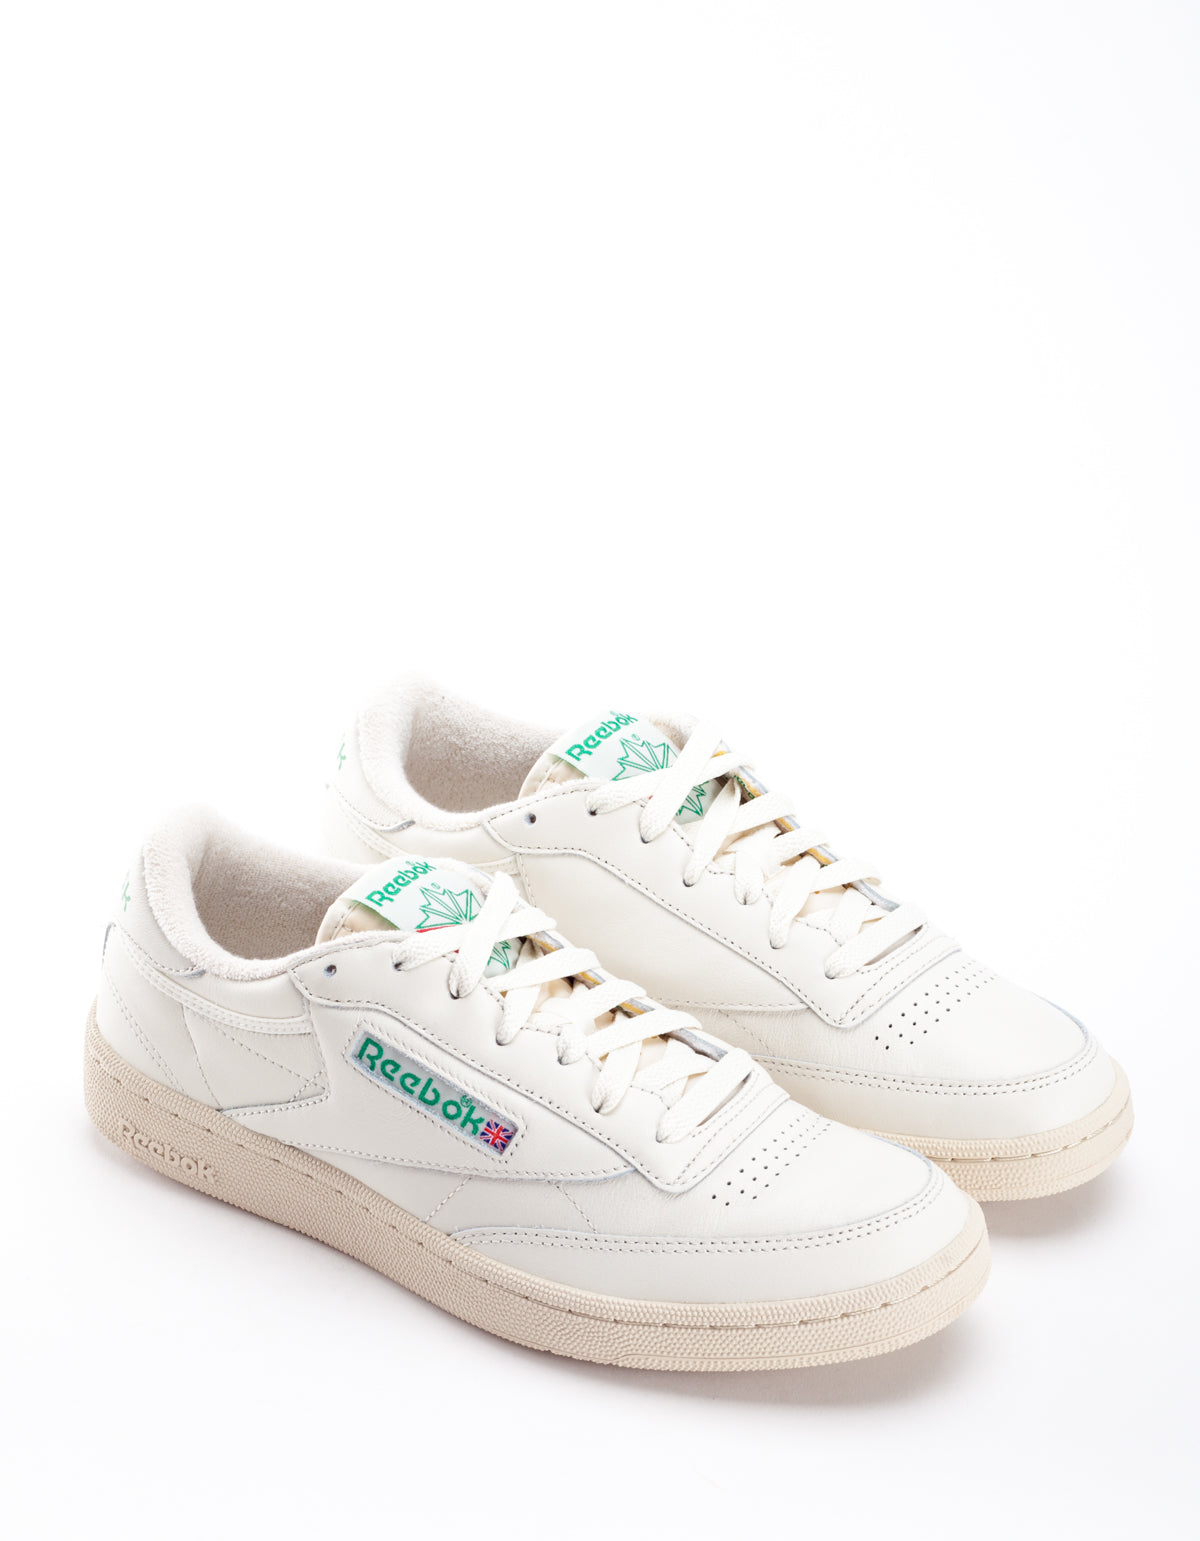 Reebok Club C 85 Vintage Chalk Paperwhite Glen Green